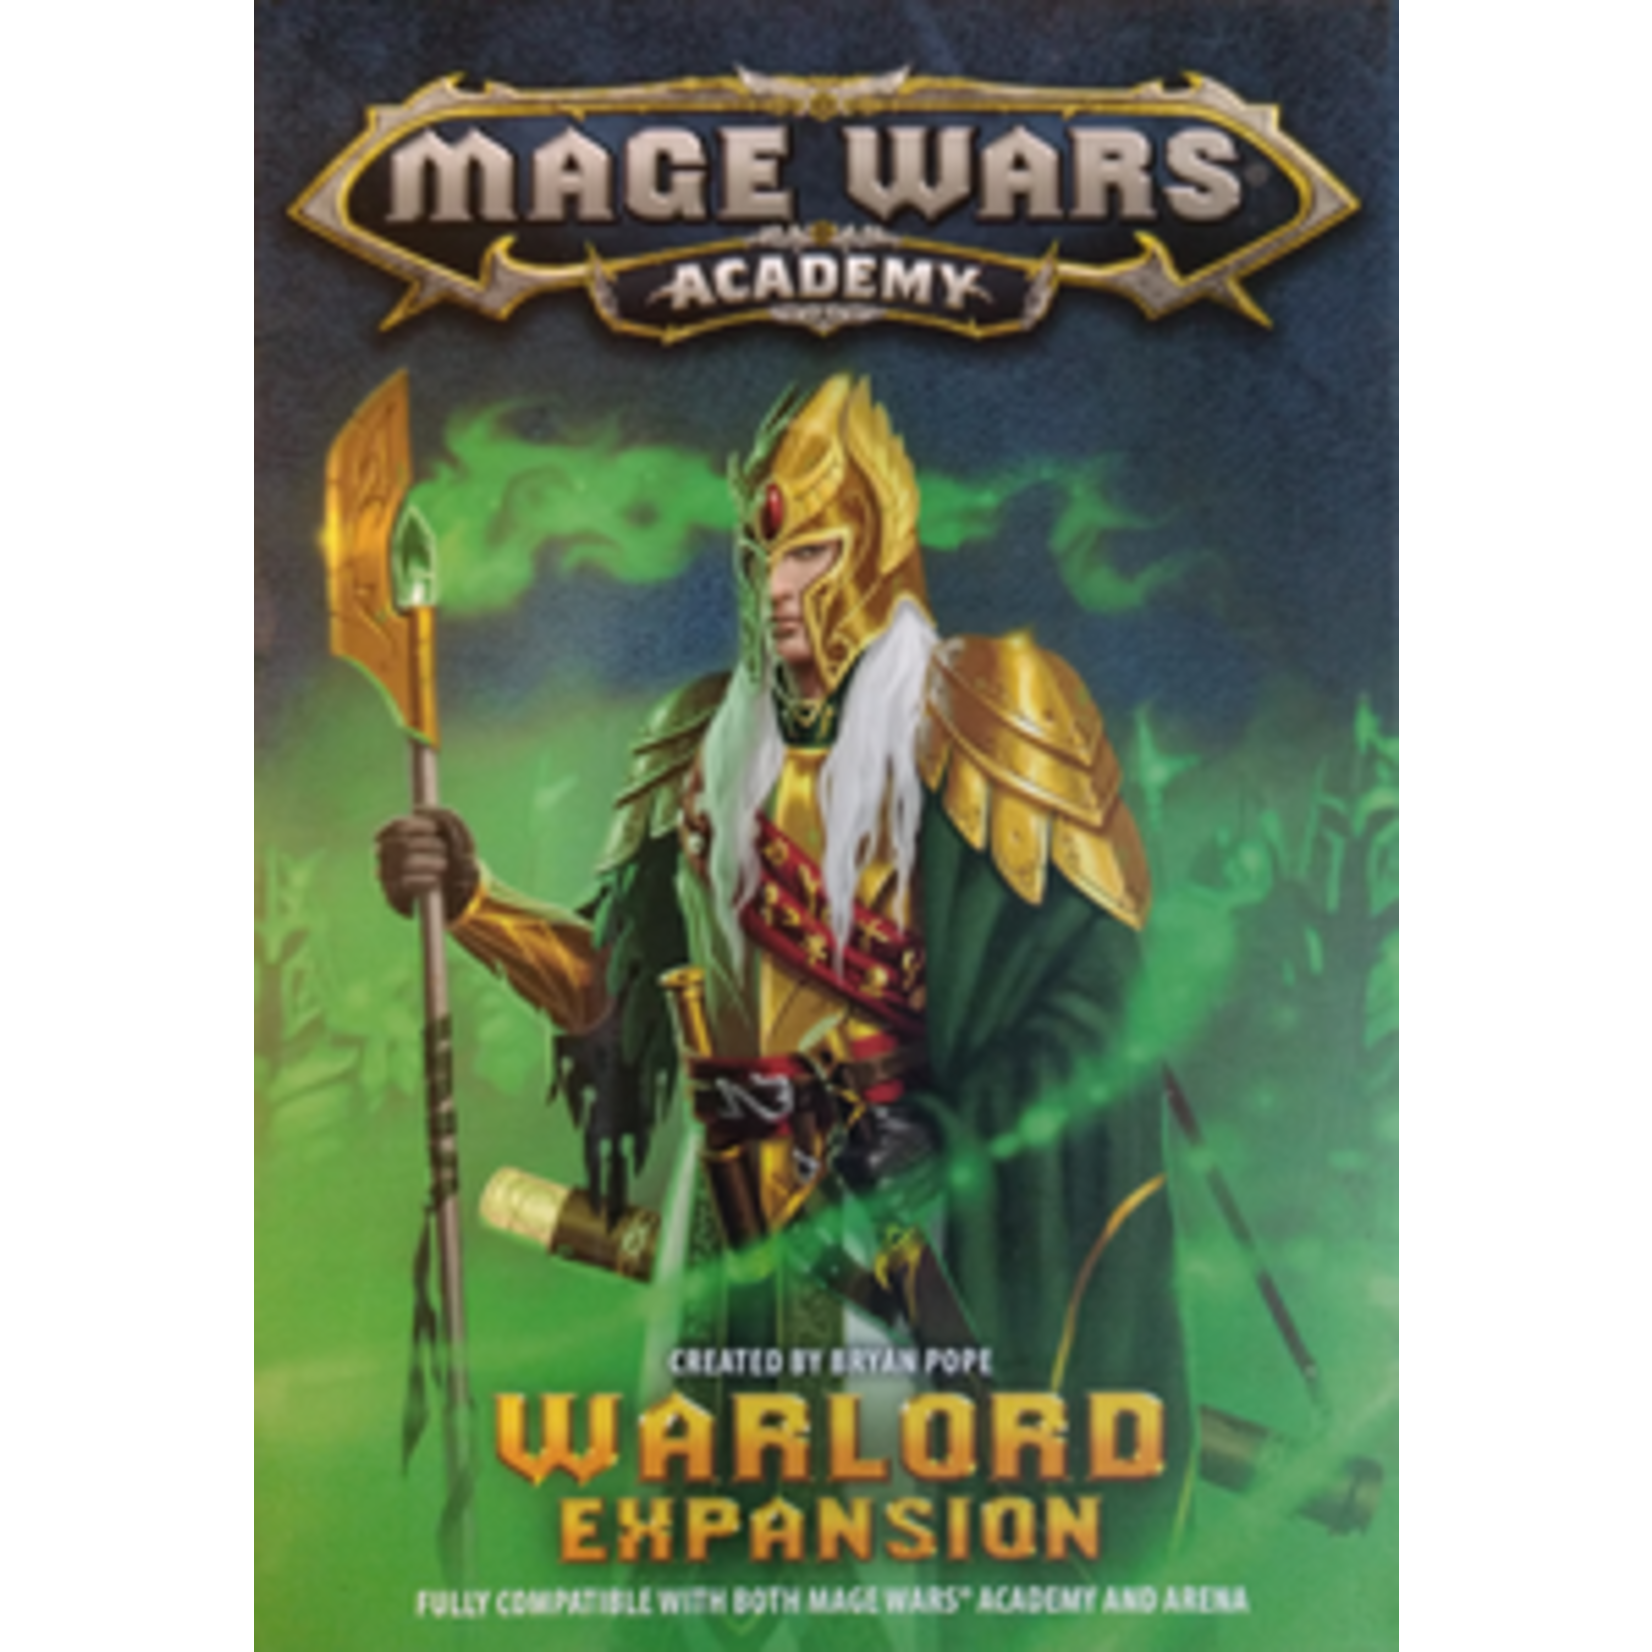 Mage Wars Academy Warlord Expansion